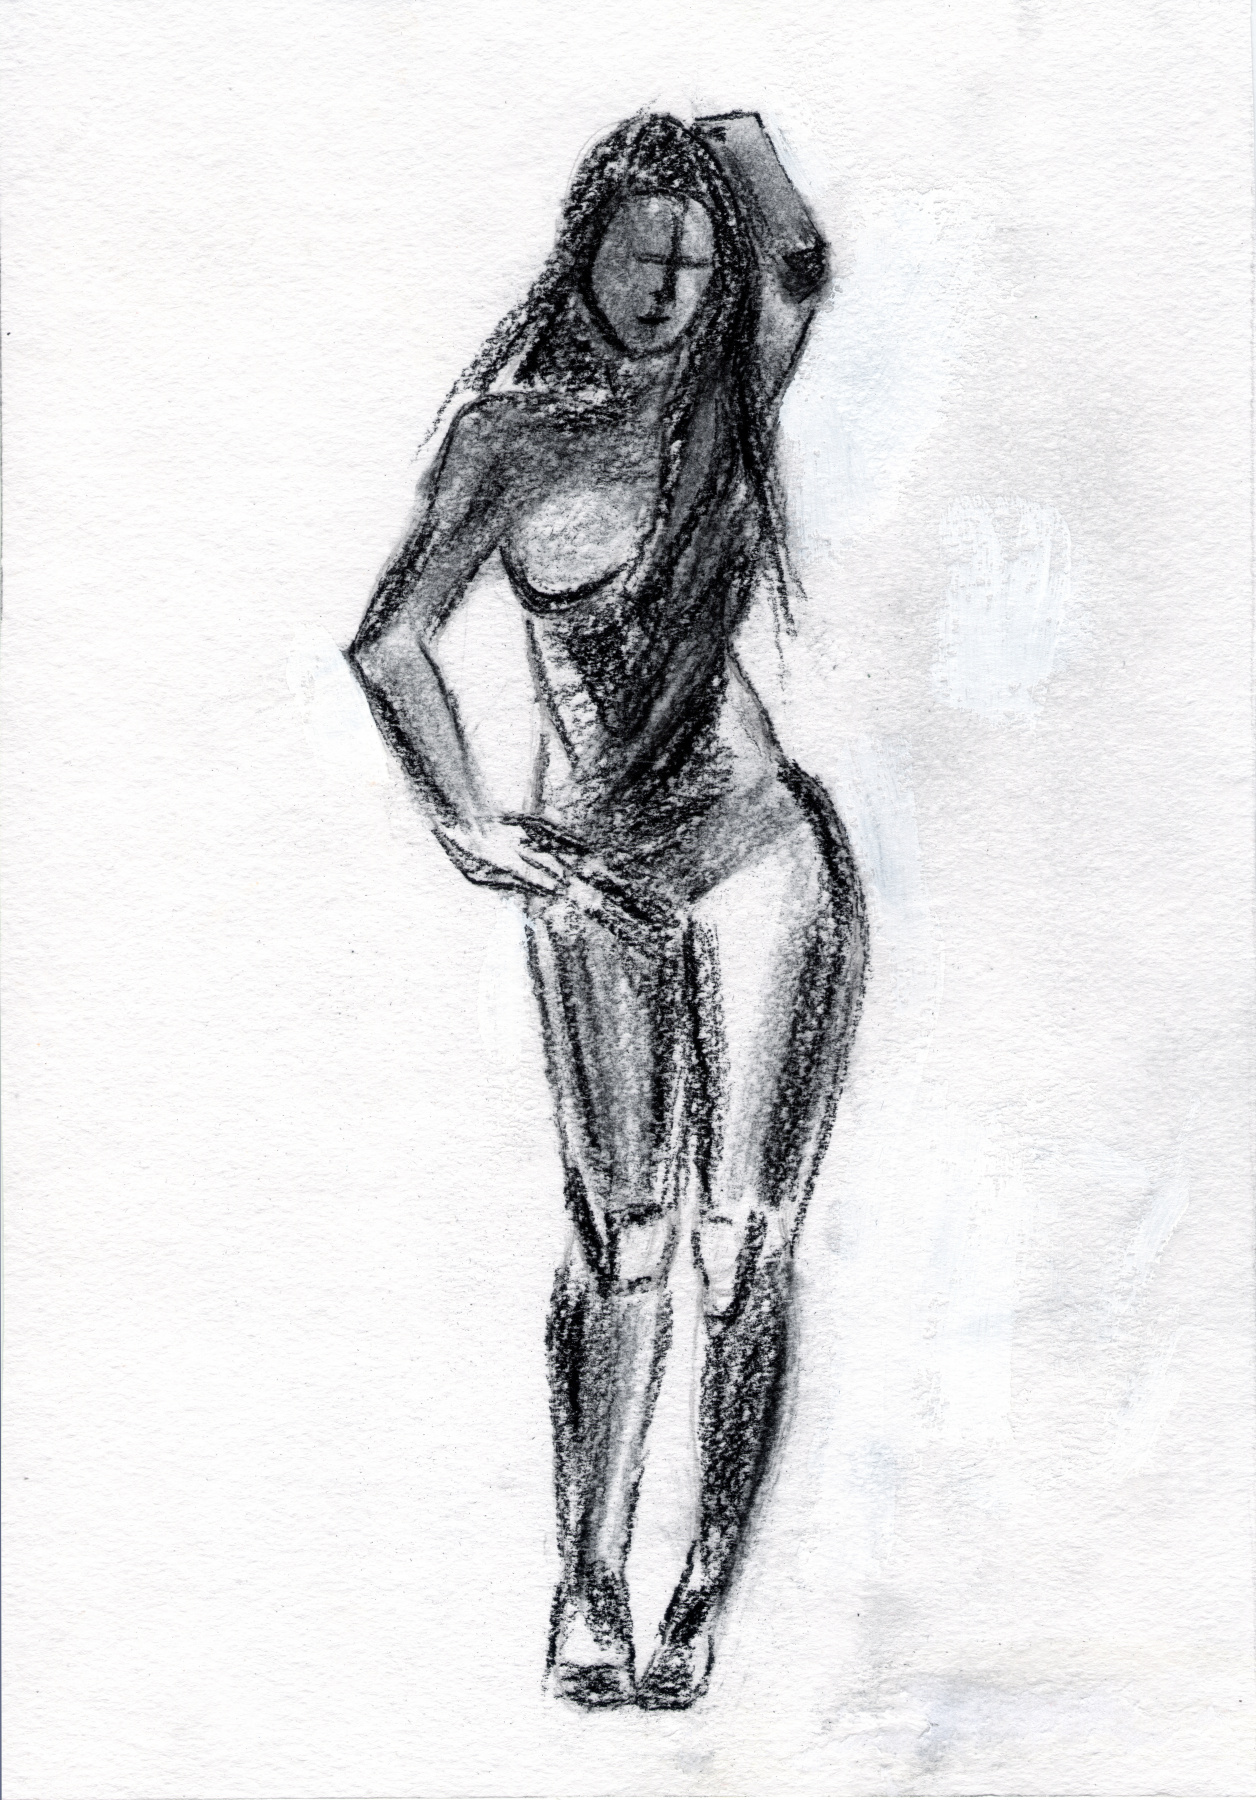 Polina. A woman with a hand behind her head. Sketch